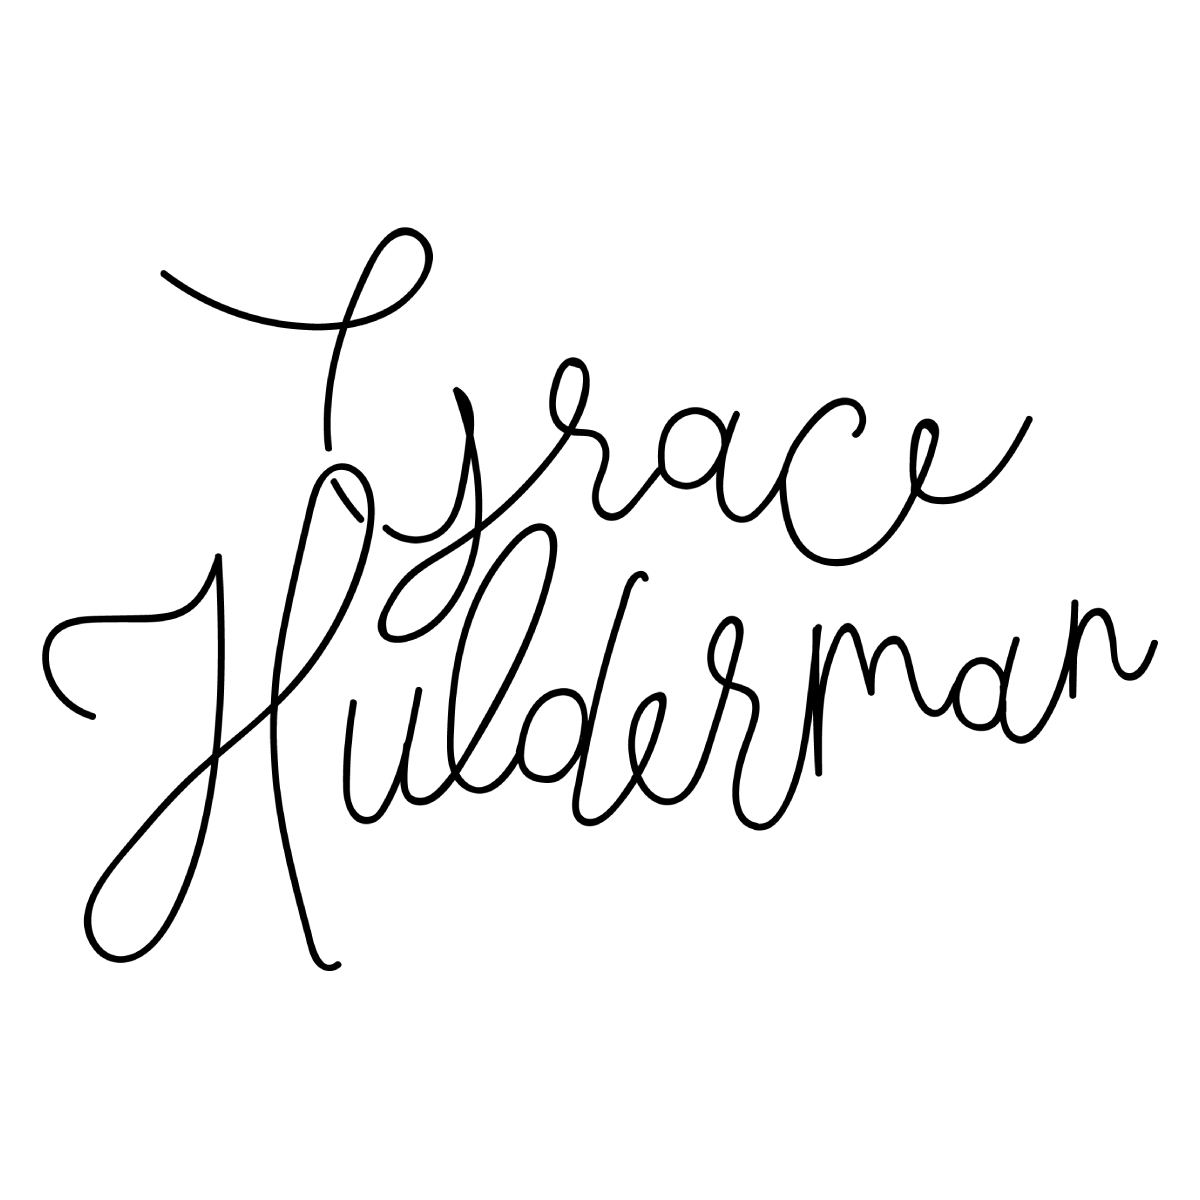 Grace Hulderman